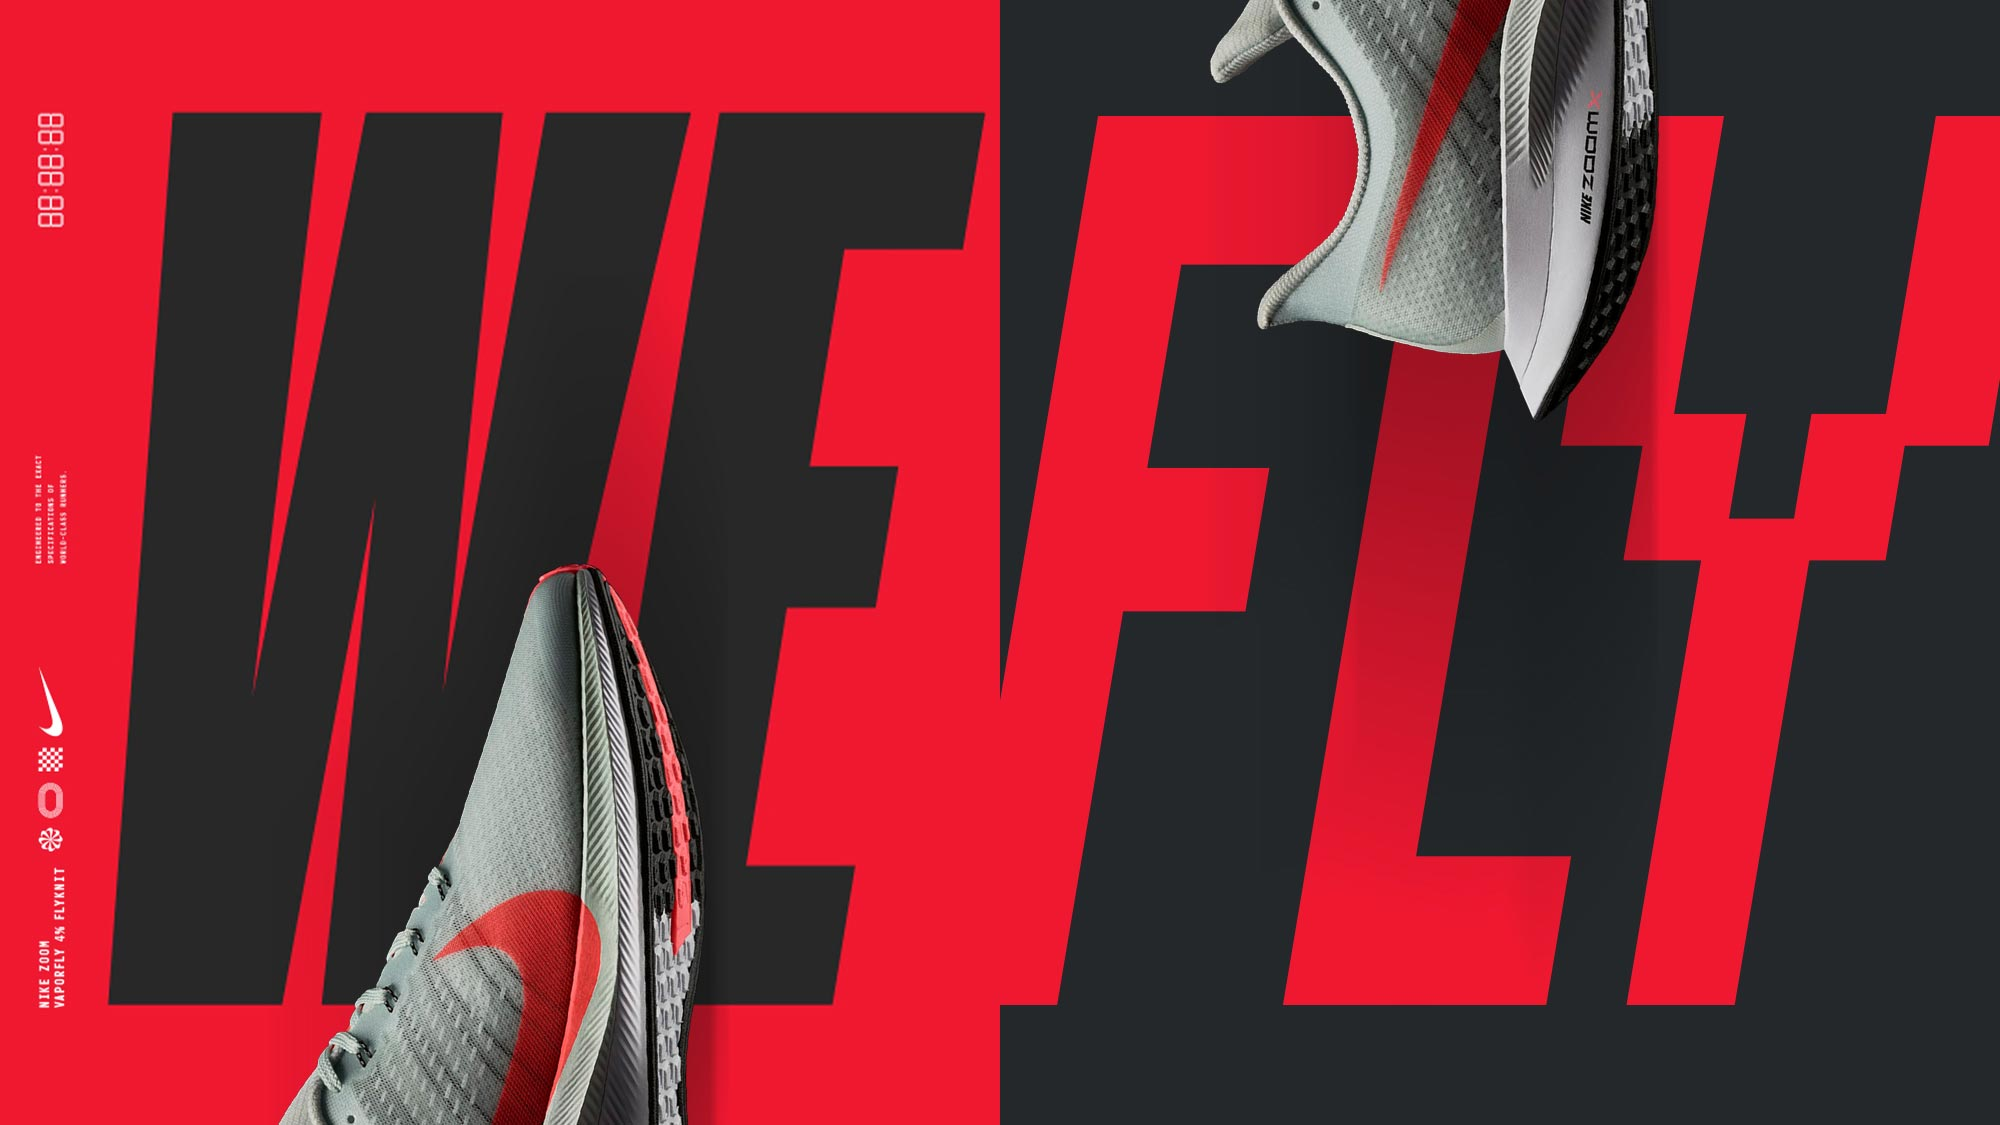 Nike WeFly design with shoes